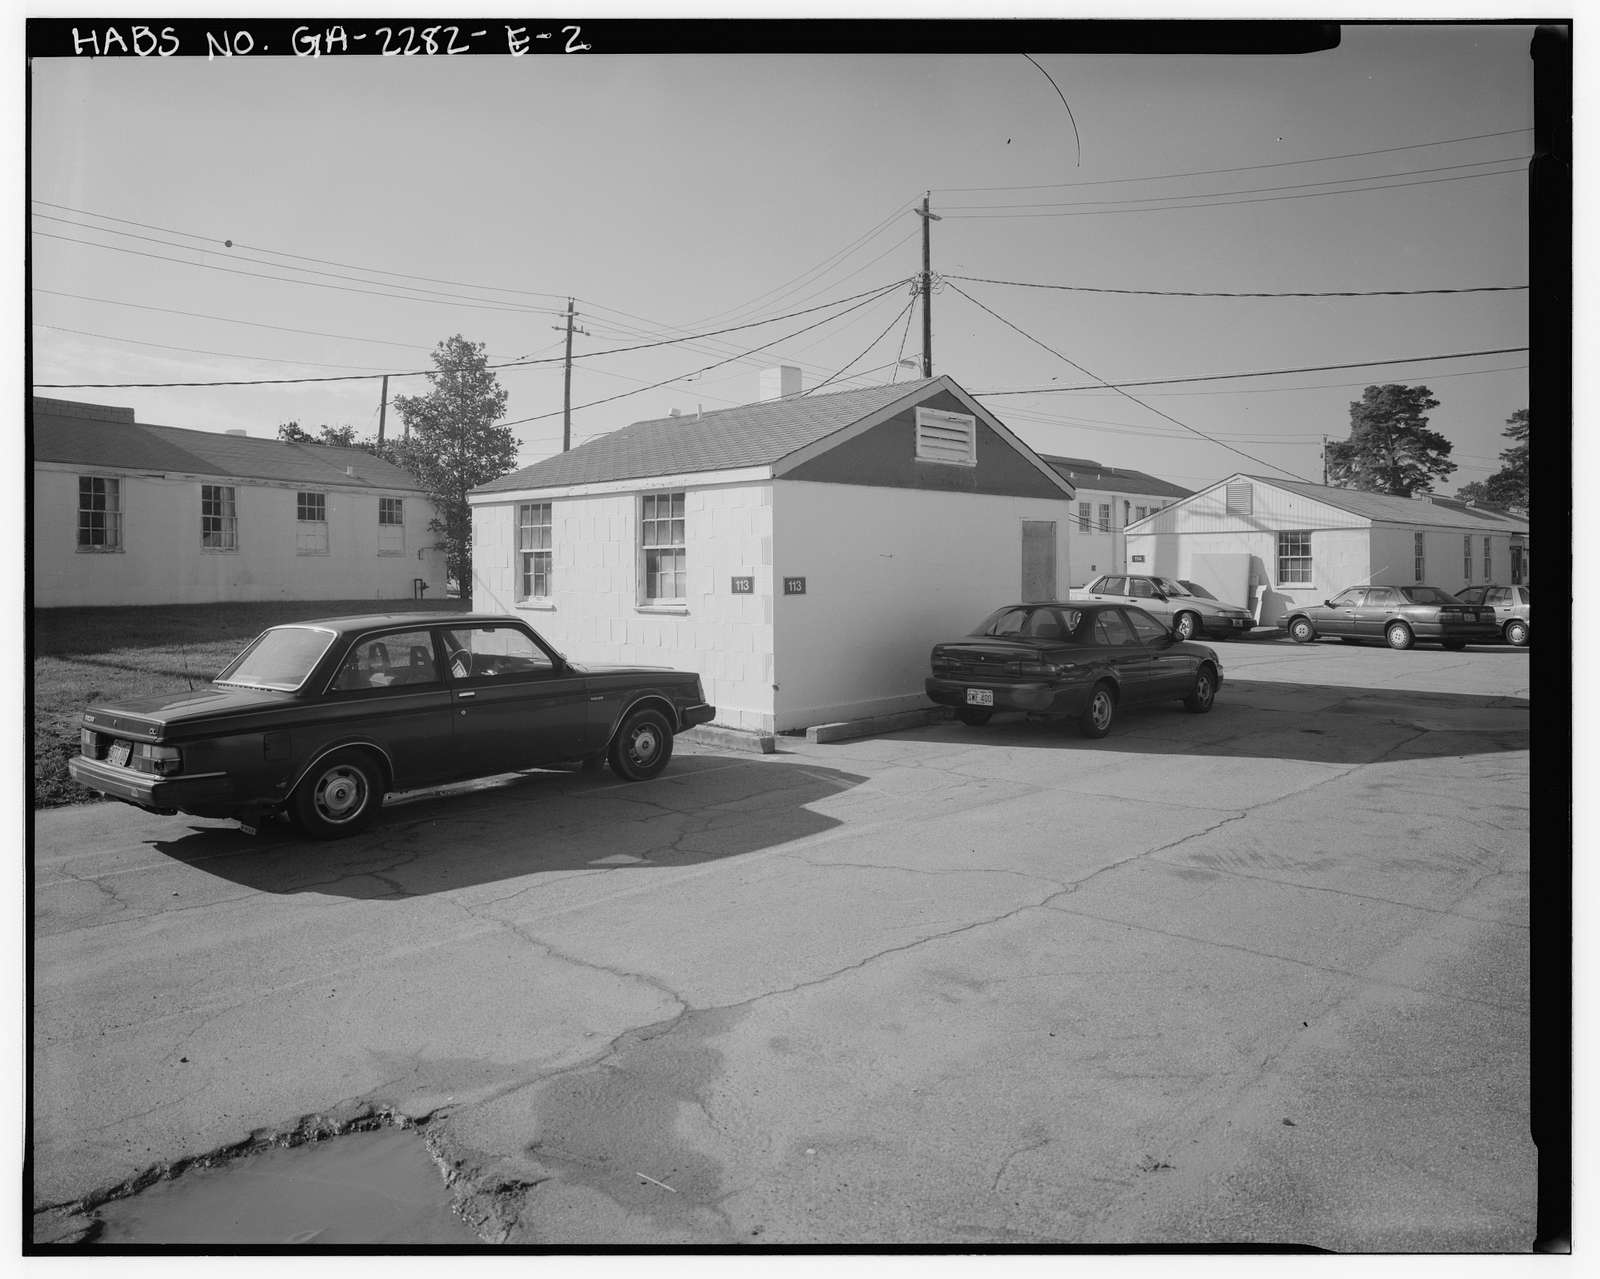 Fort McPherson, World War II Station Hospital, G. U. Treatment Unit Lavatory, Thorne & Hood Avenues, Atlanta, Fulton County, GA